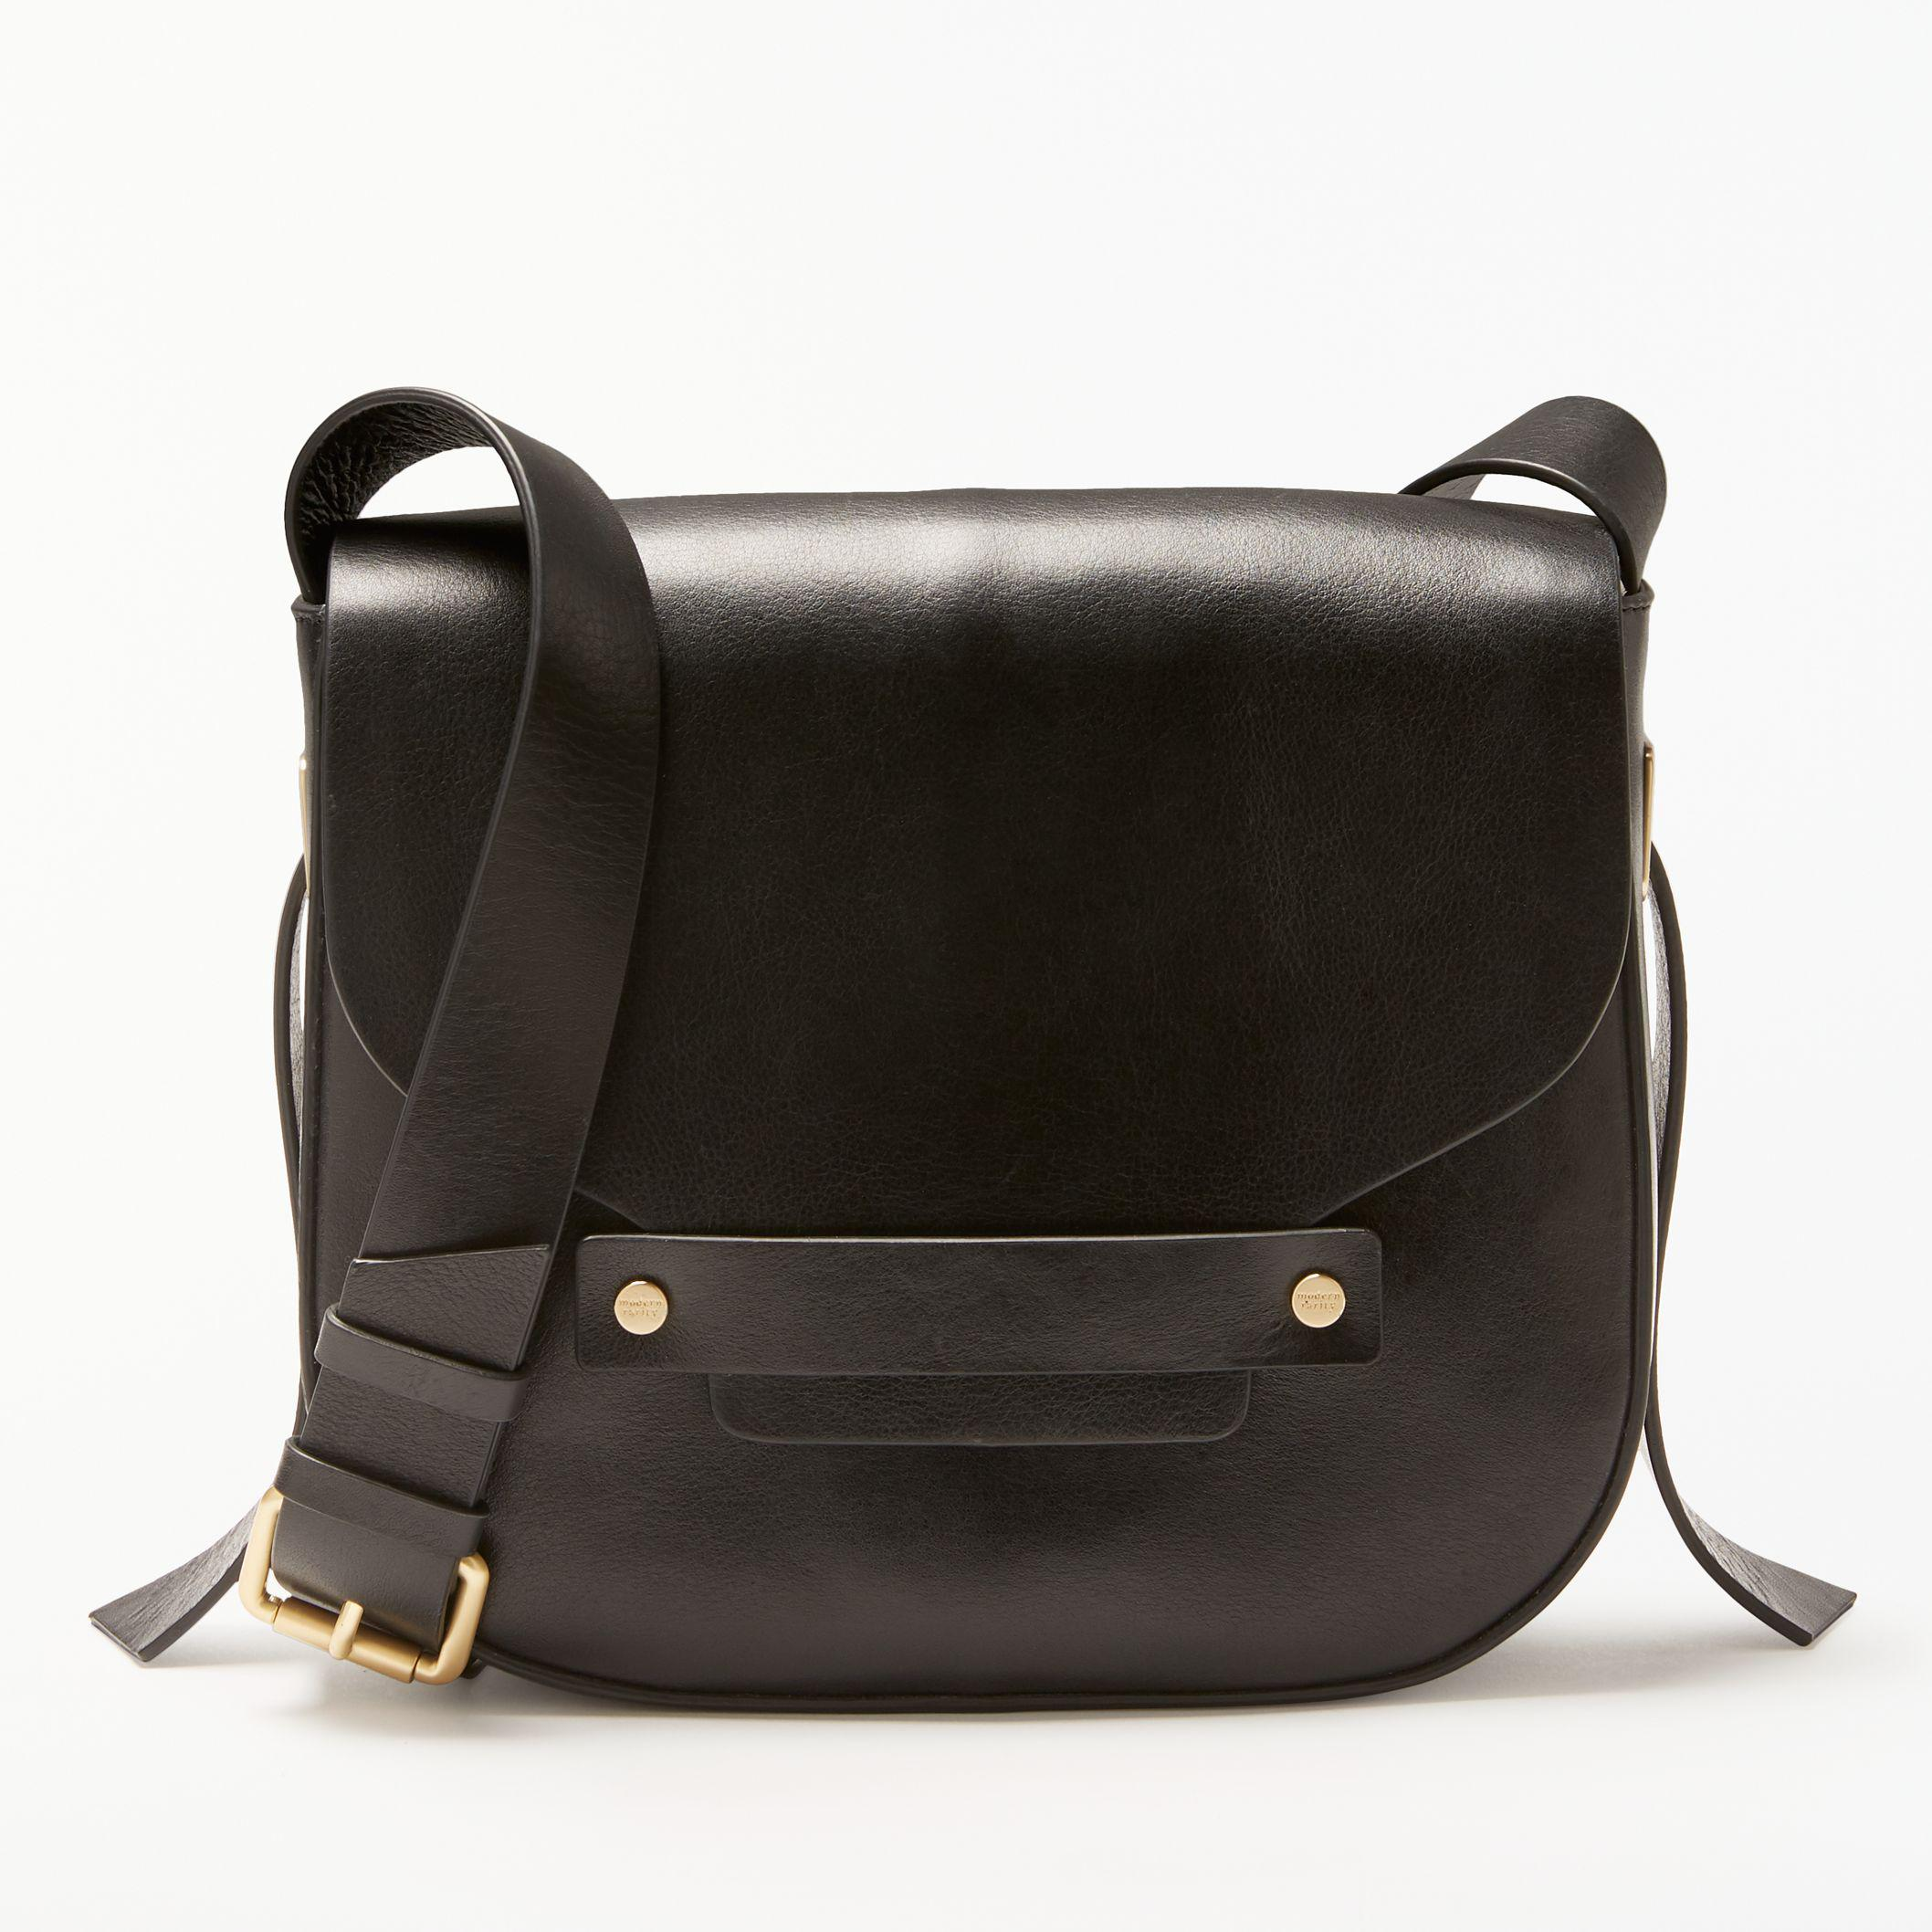 Free Shipping Cheap Real Modern Rarity Ribbon Leather Mini Saddle Bag Clearance Perfect 2018 Cheap Price Outlet Perfect bvY1wN3qU